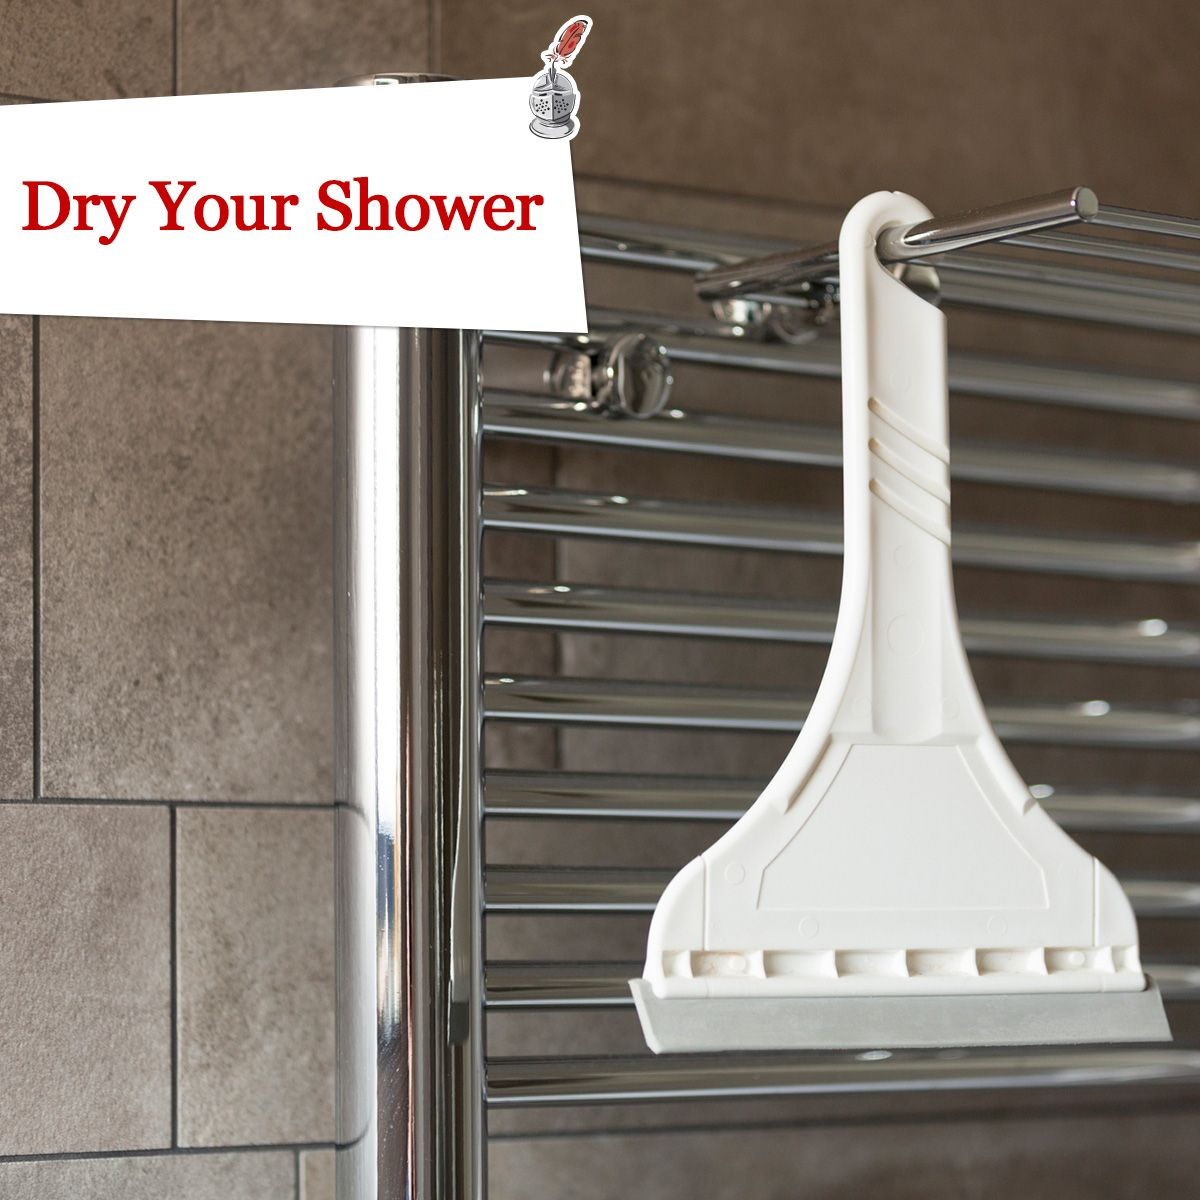 Dry Your Shower